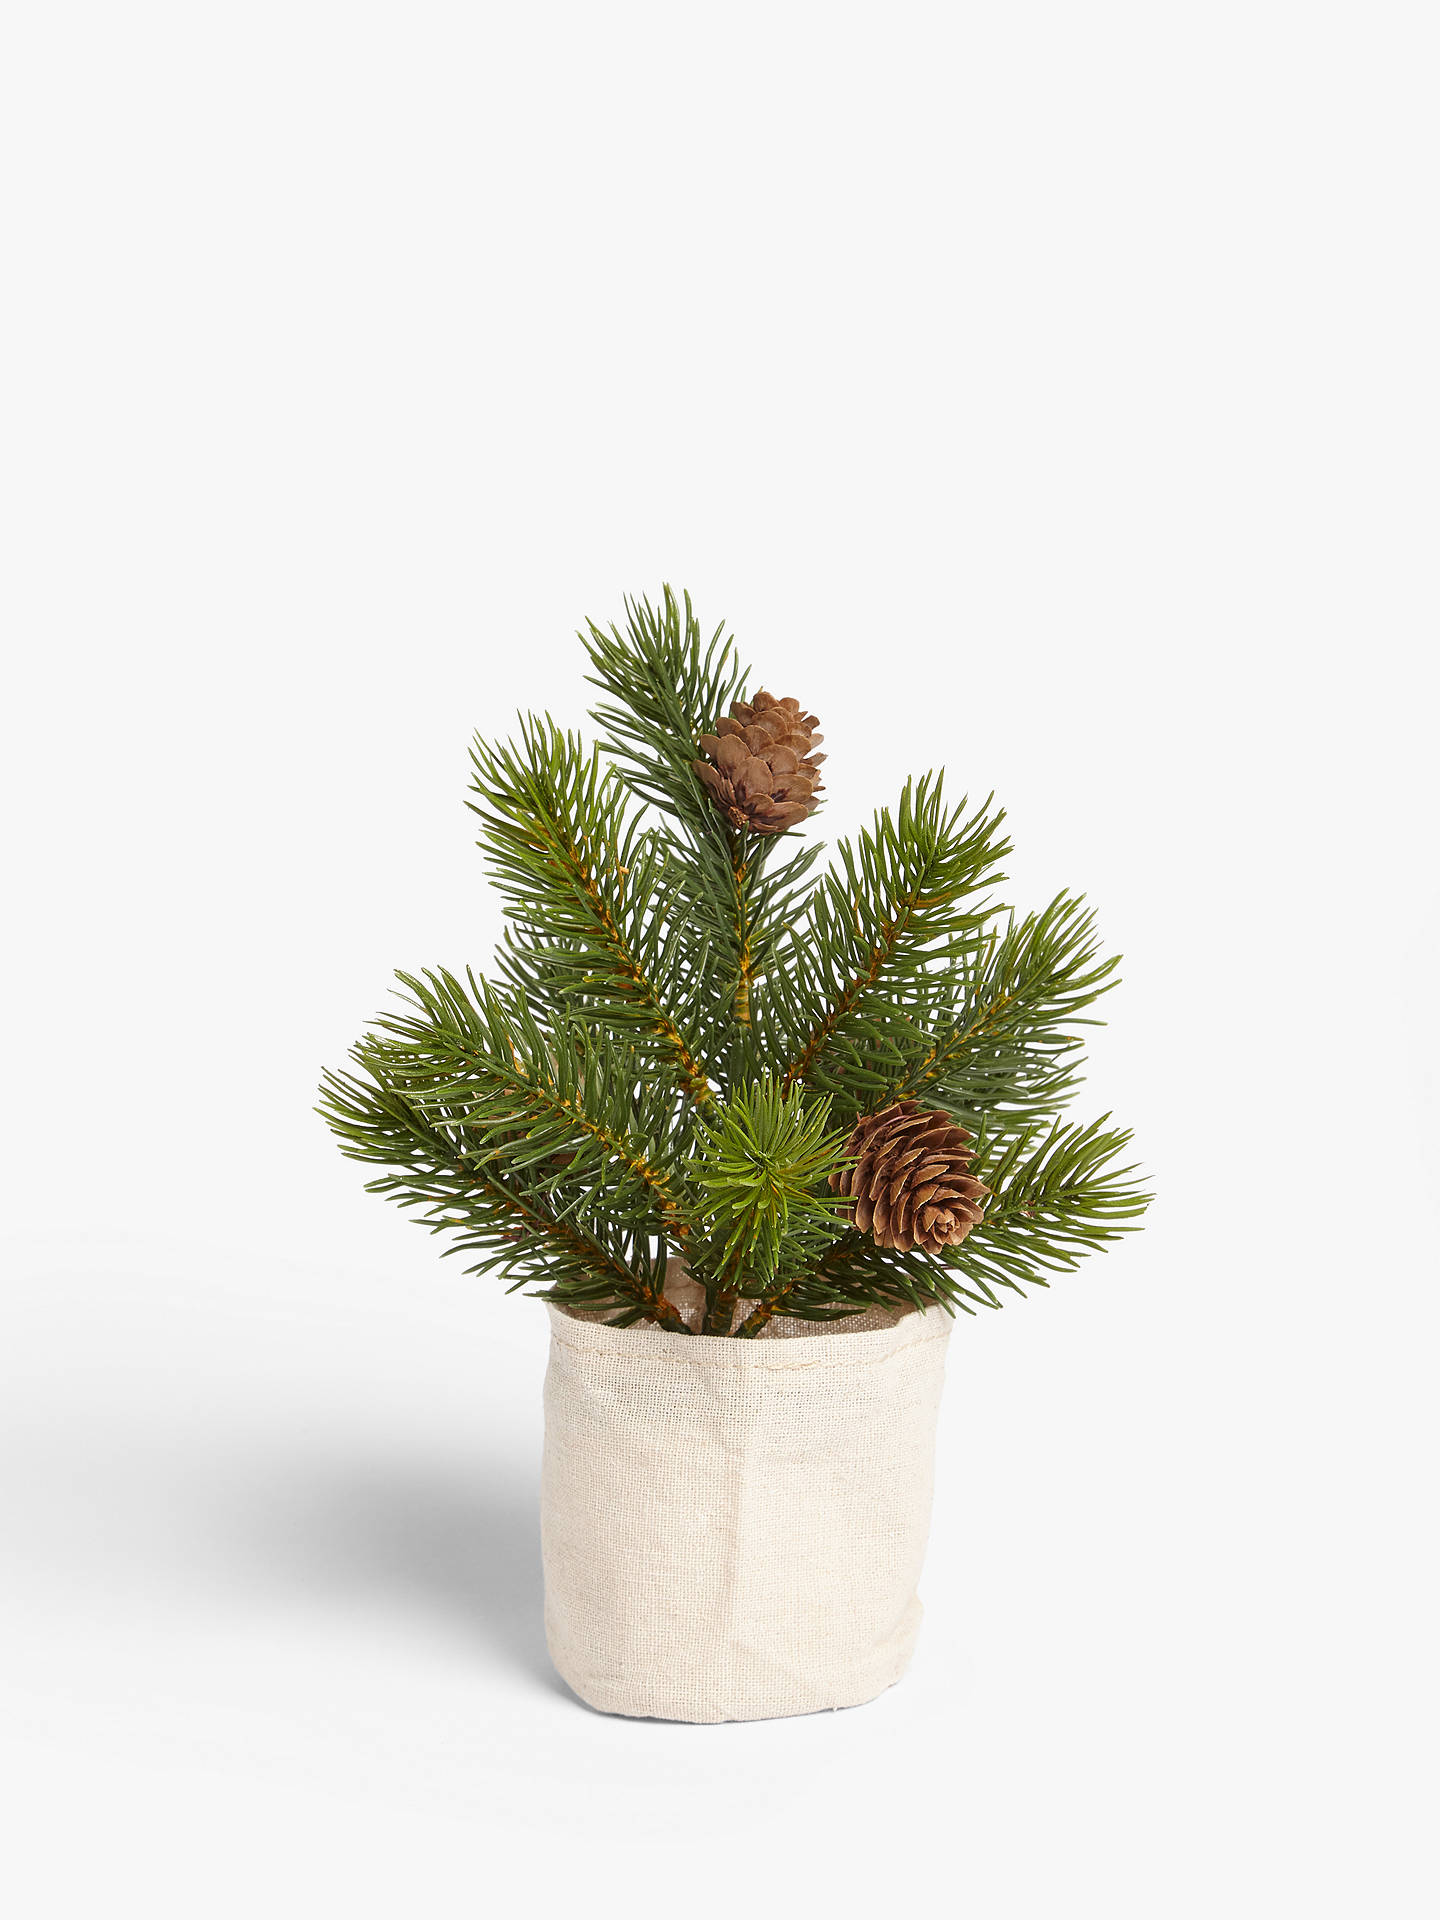 Buy John Lewis & Partners Campfire Mini Tree in Fabric Bag Online at johnlewis.com